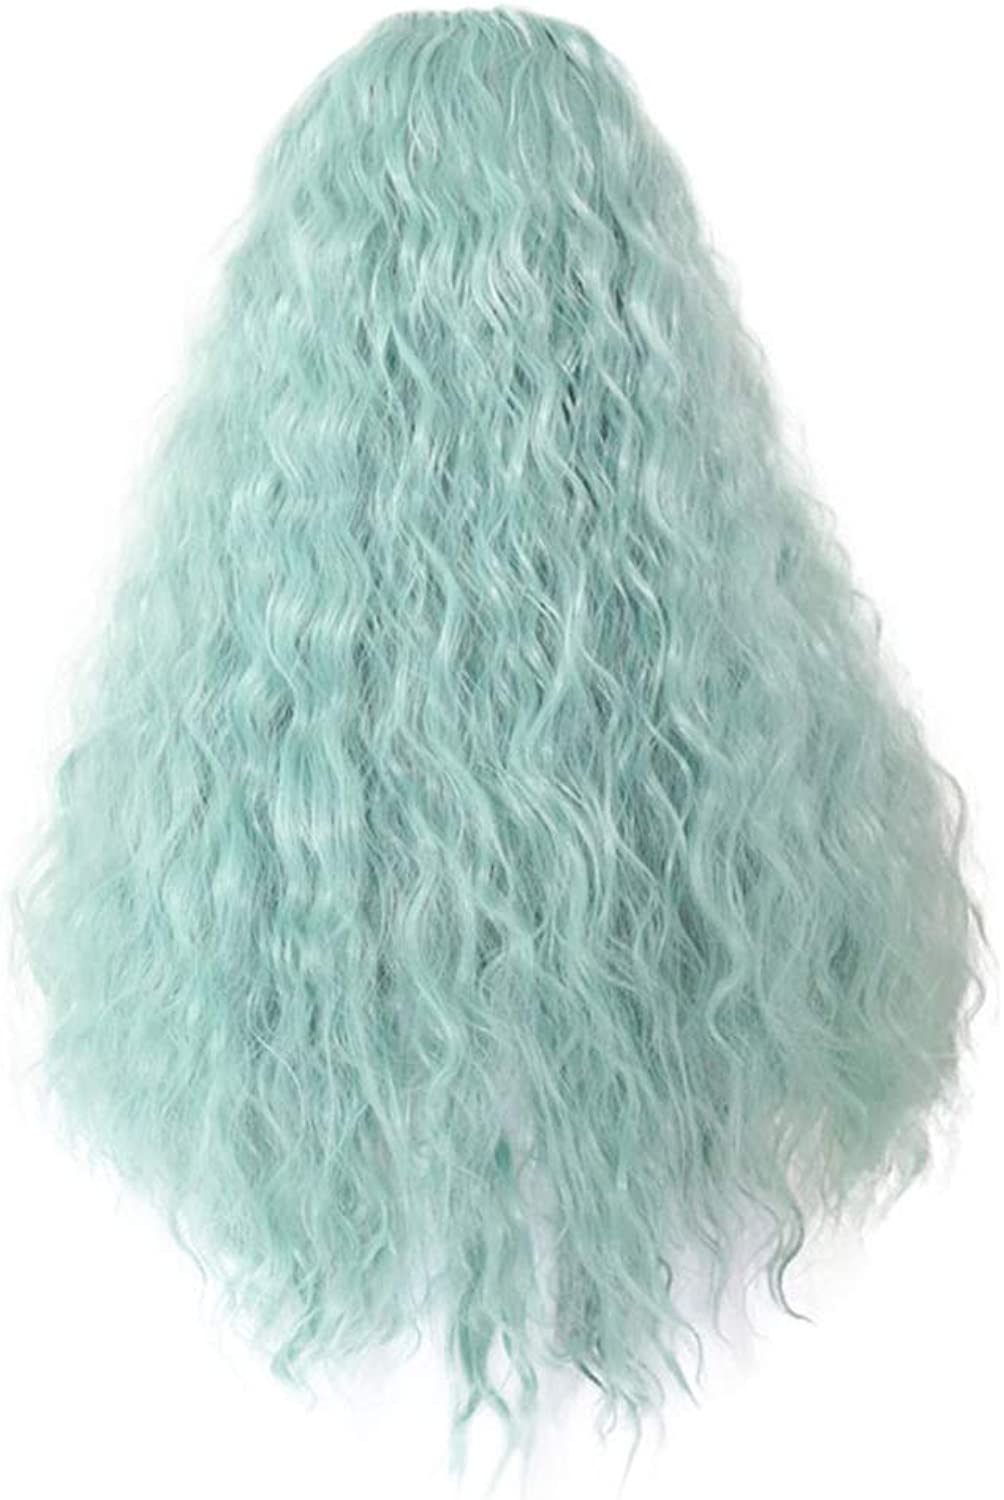 Wig Lady, green small wavy hair, density 150%, suitable for everyday costumes and role play on the party.